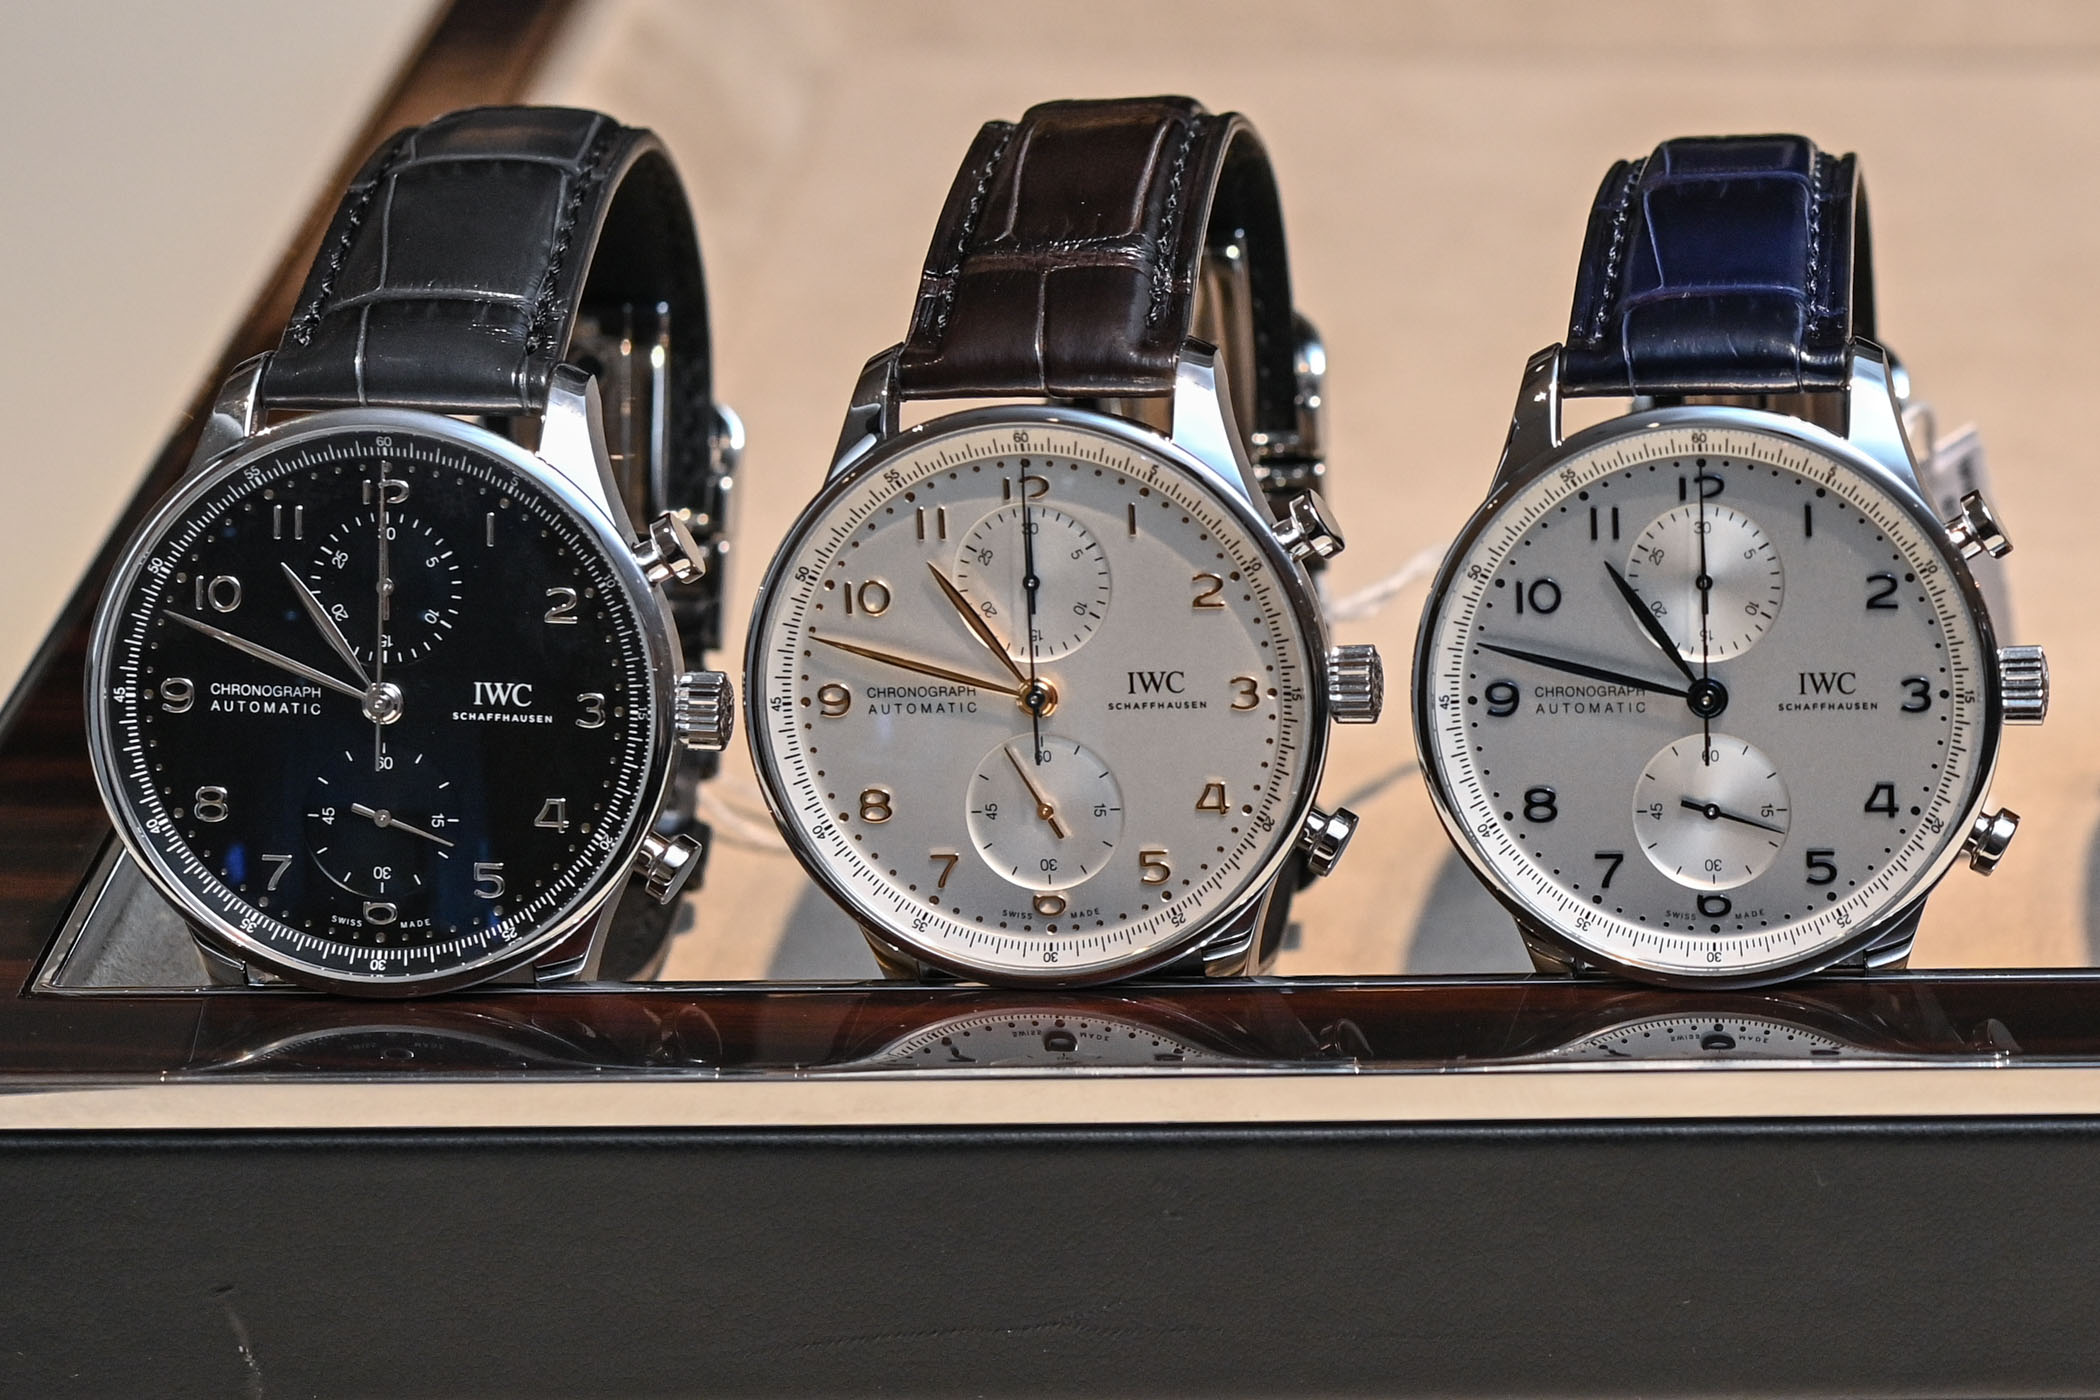 IWC Portugieser Chronograph 3716 in-house movement